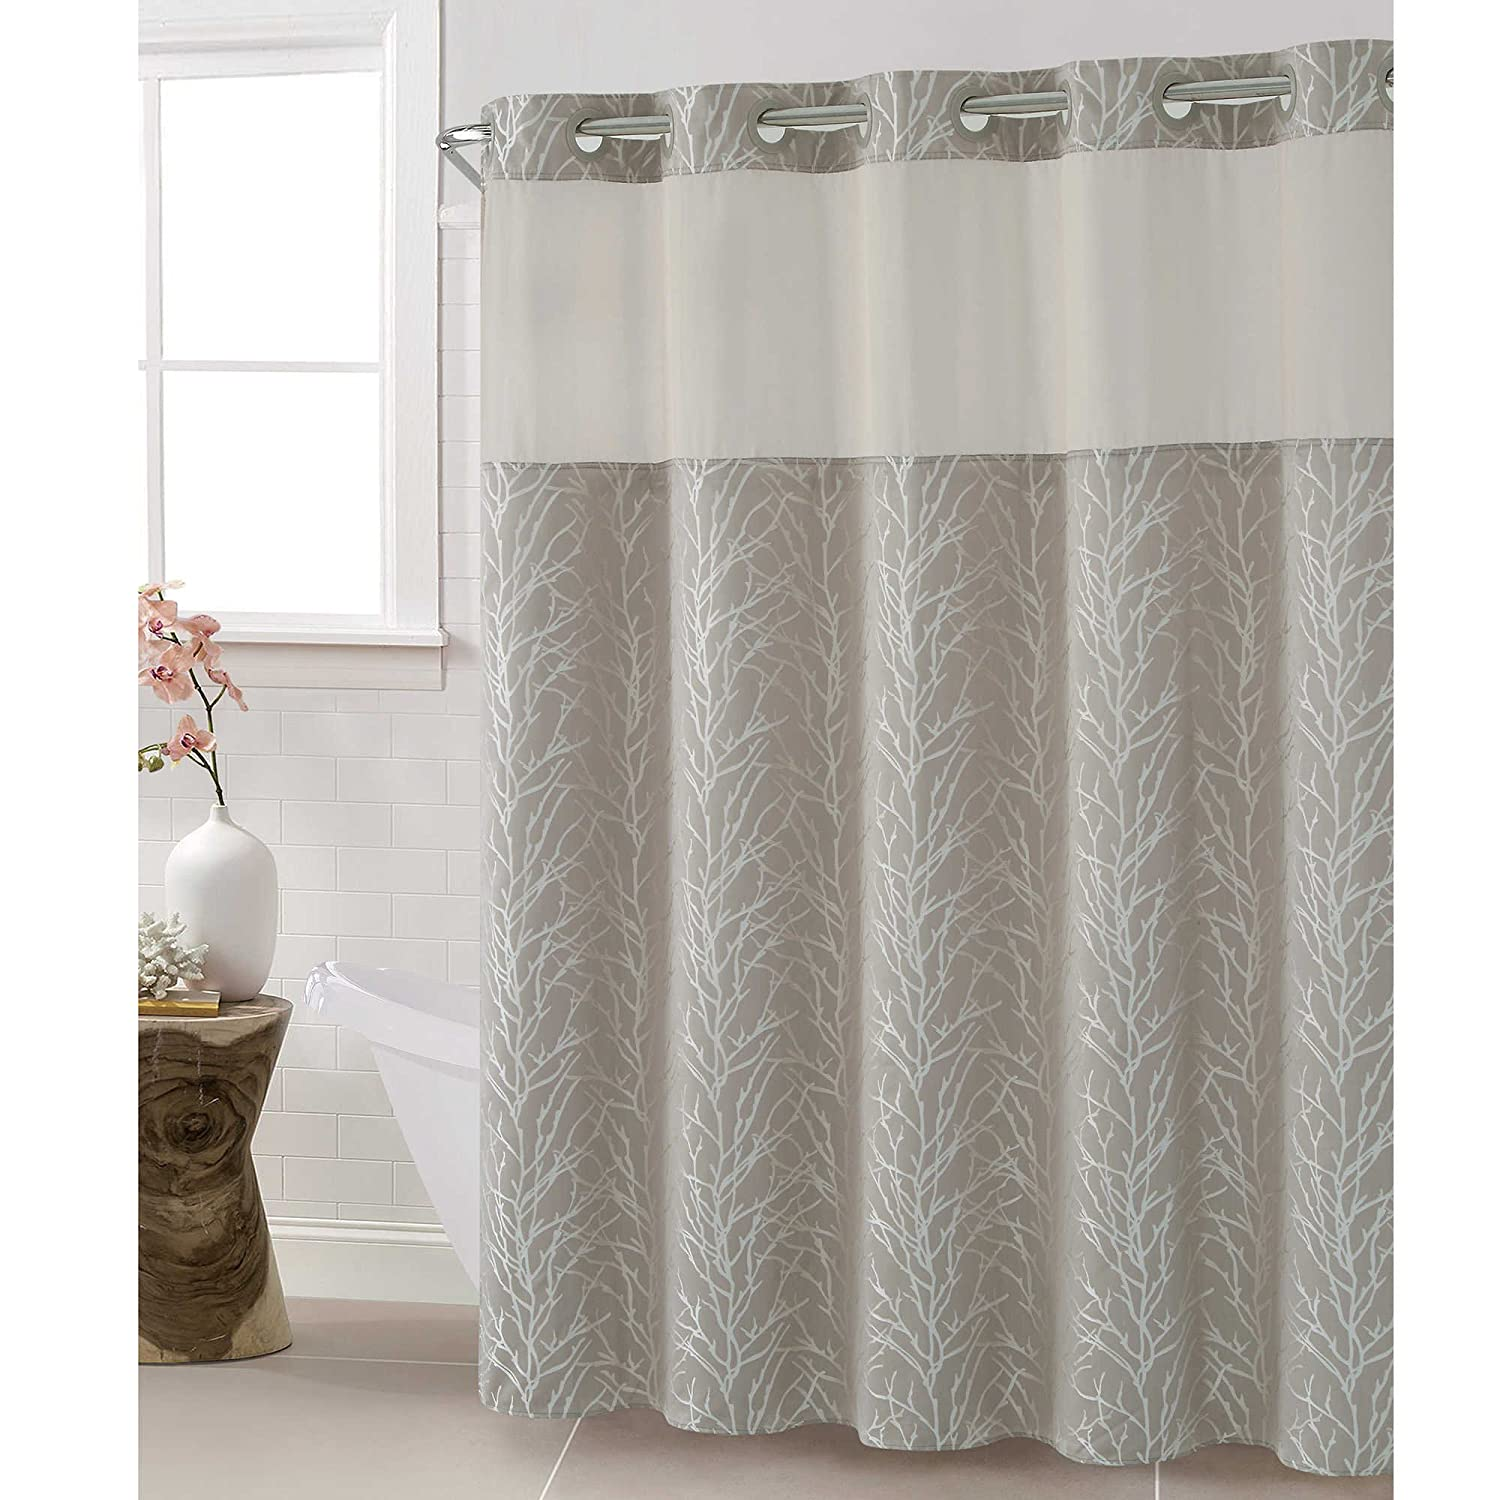 Amazon Hookless Jacquard Tree Branch 71 Inch X 86 Shower Curtain In Taupe Home Kitchen